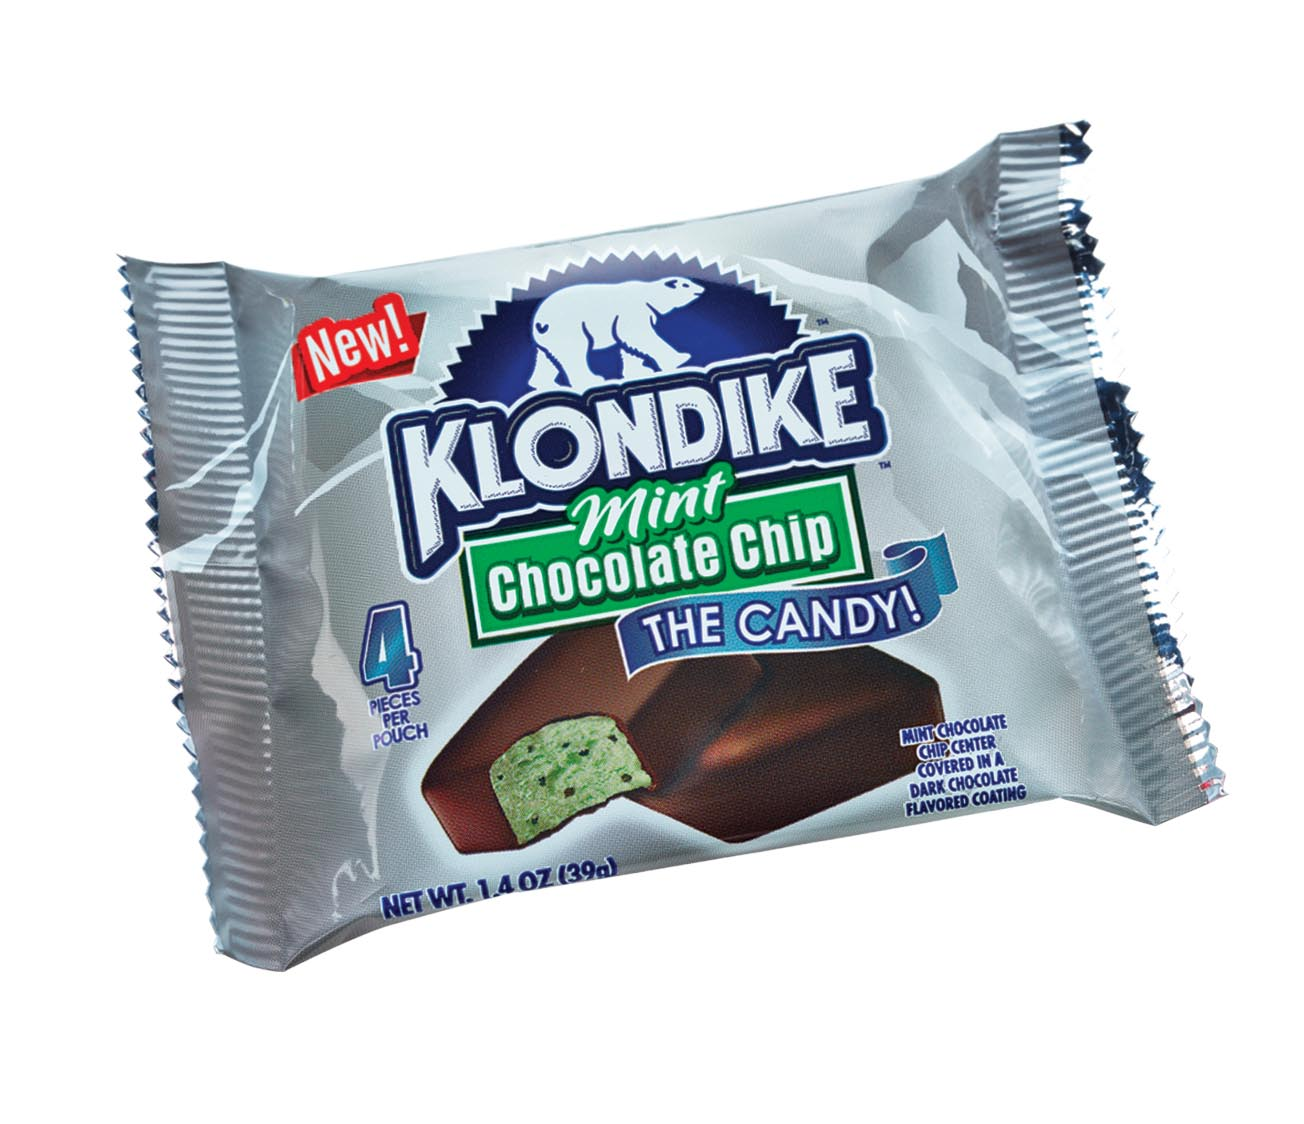 Klondike Mint Chocolate Chip Bar